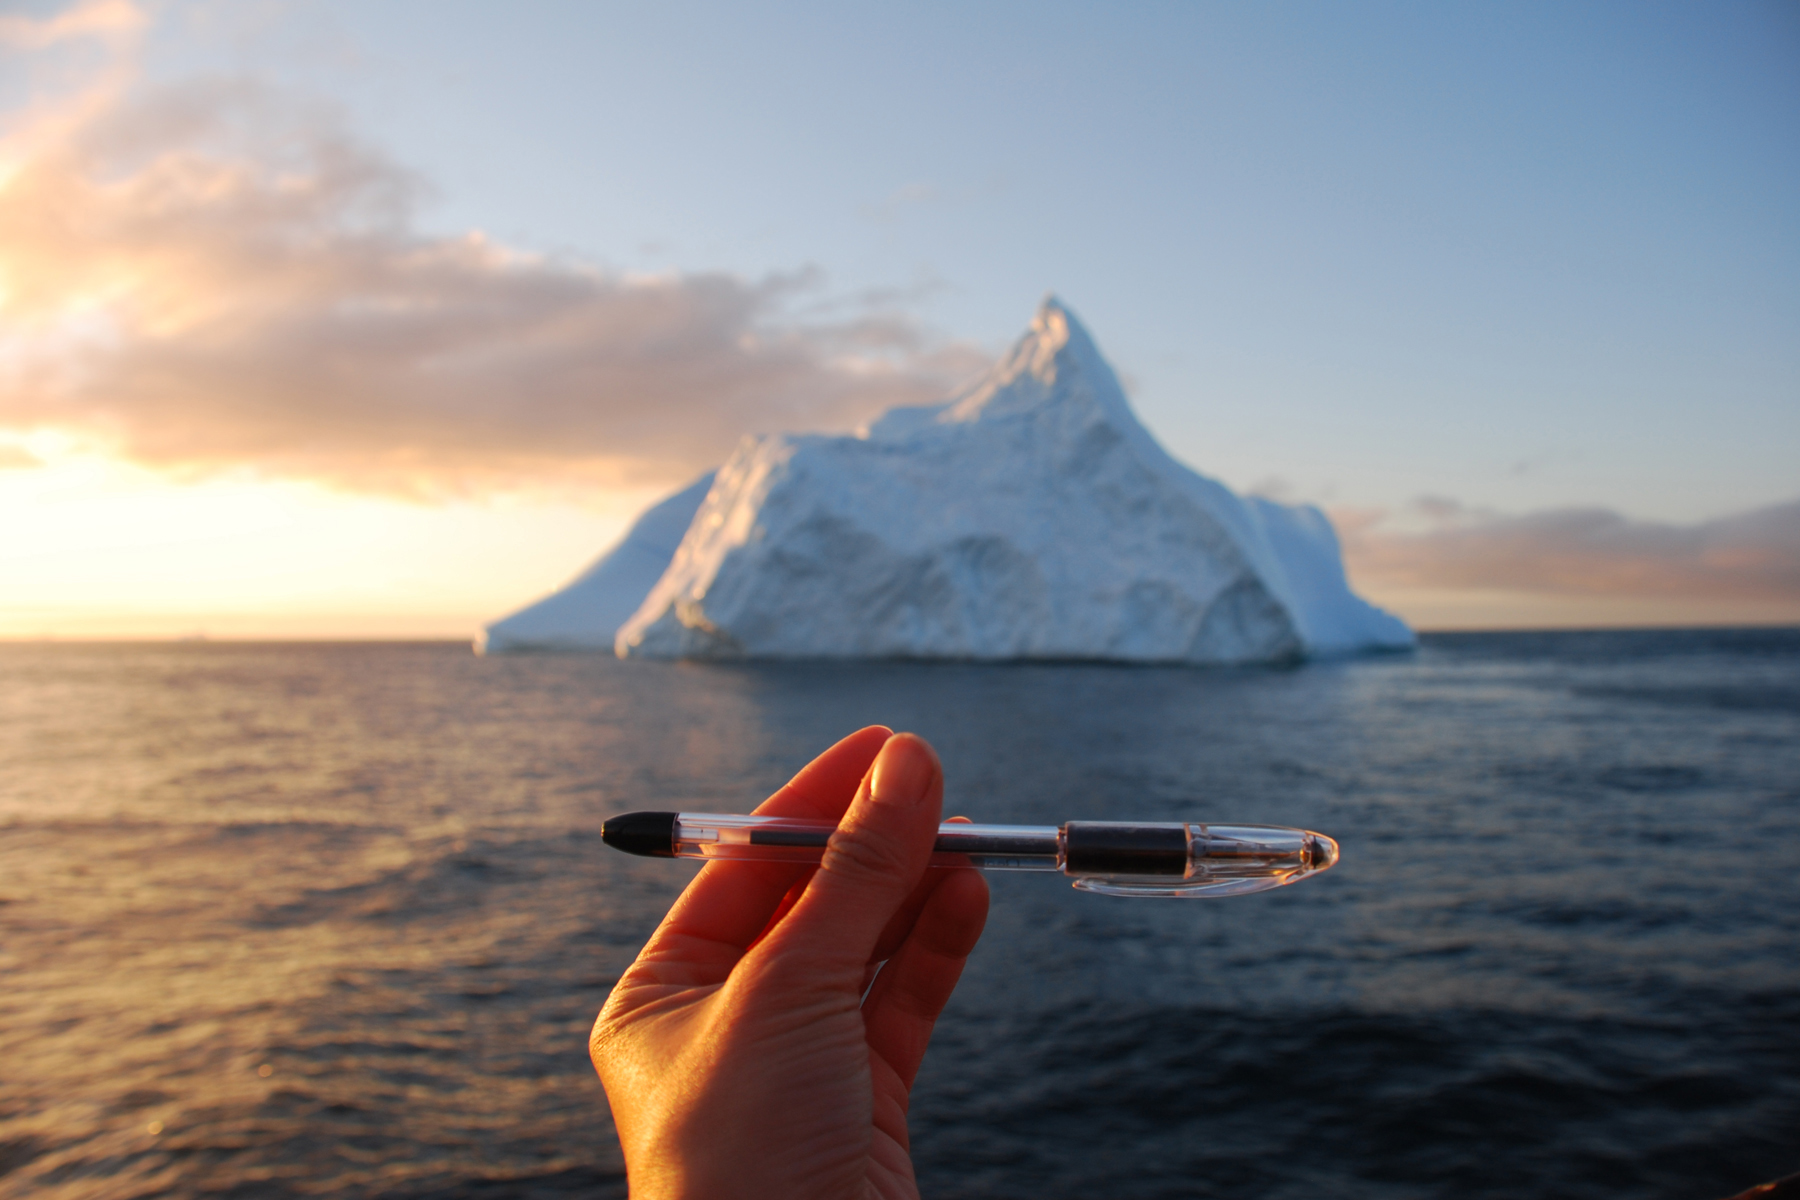 iceberg with a hand and pencil in the foreground